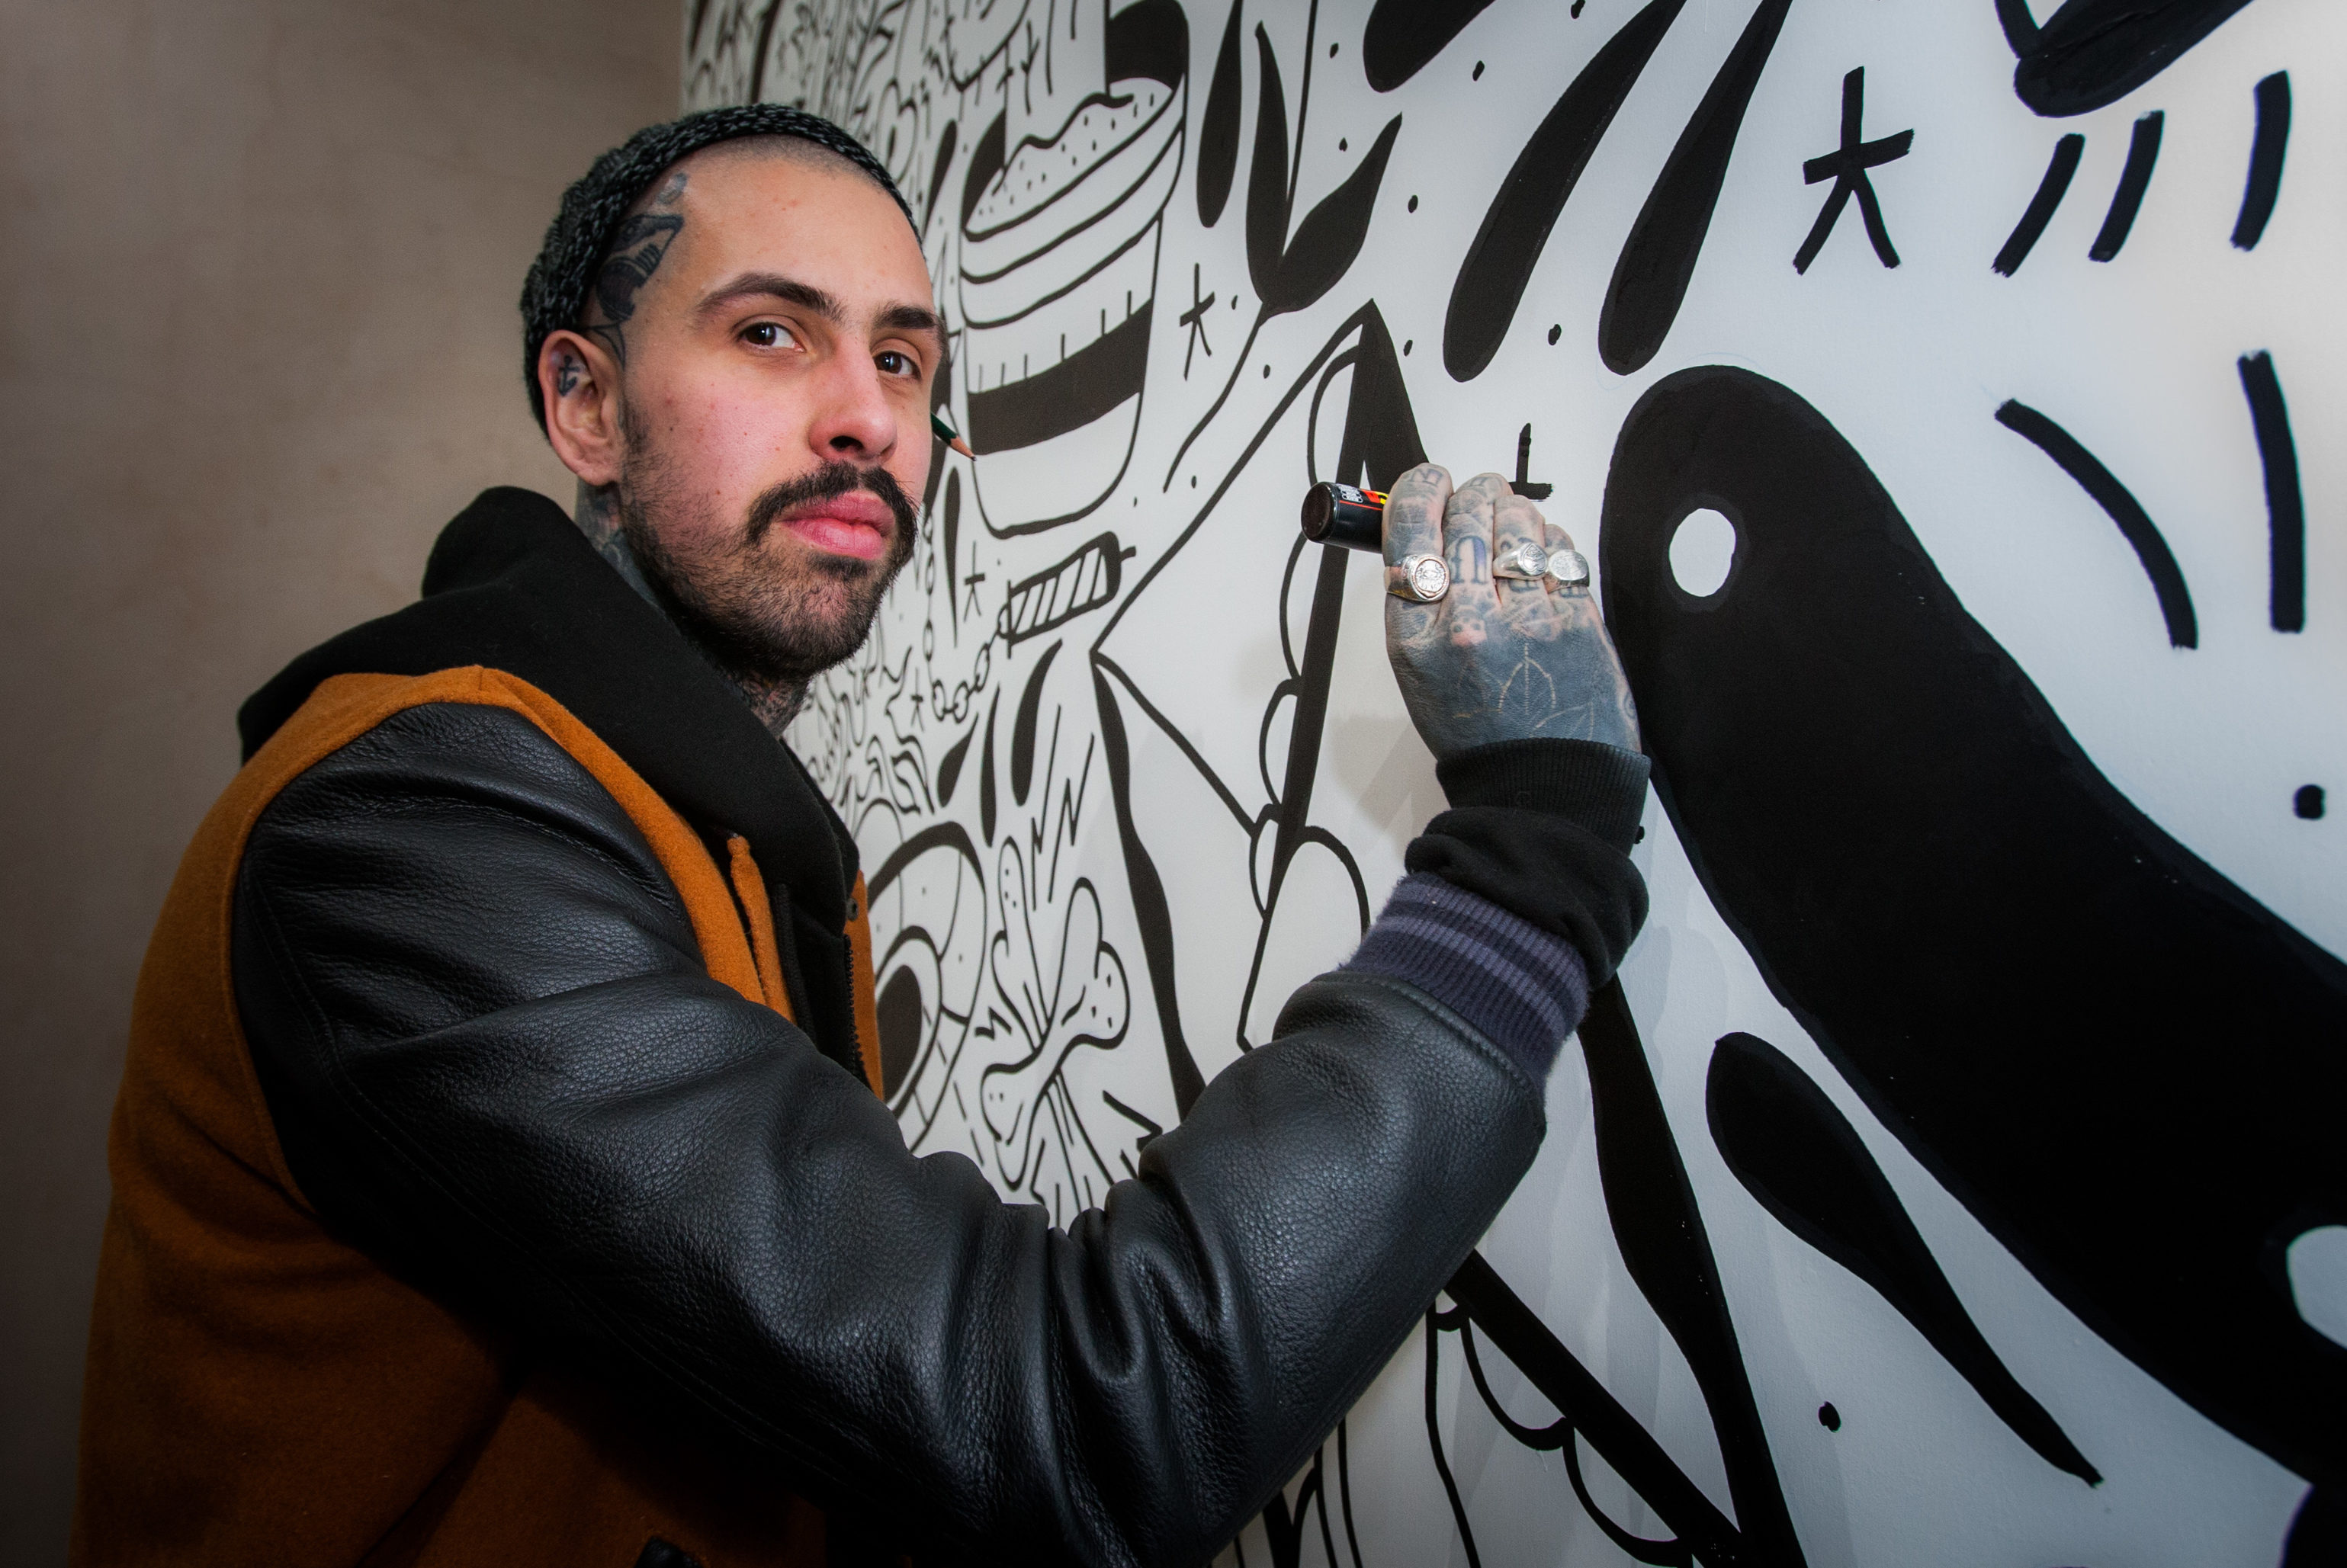 Richard Davies working on wall murals at his recently opened coffee shop, Daily Grind